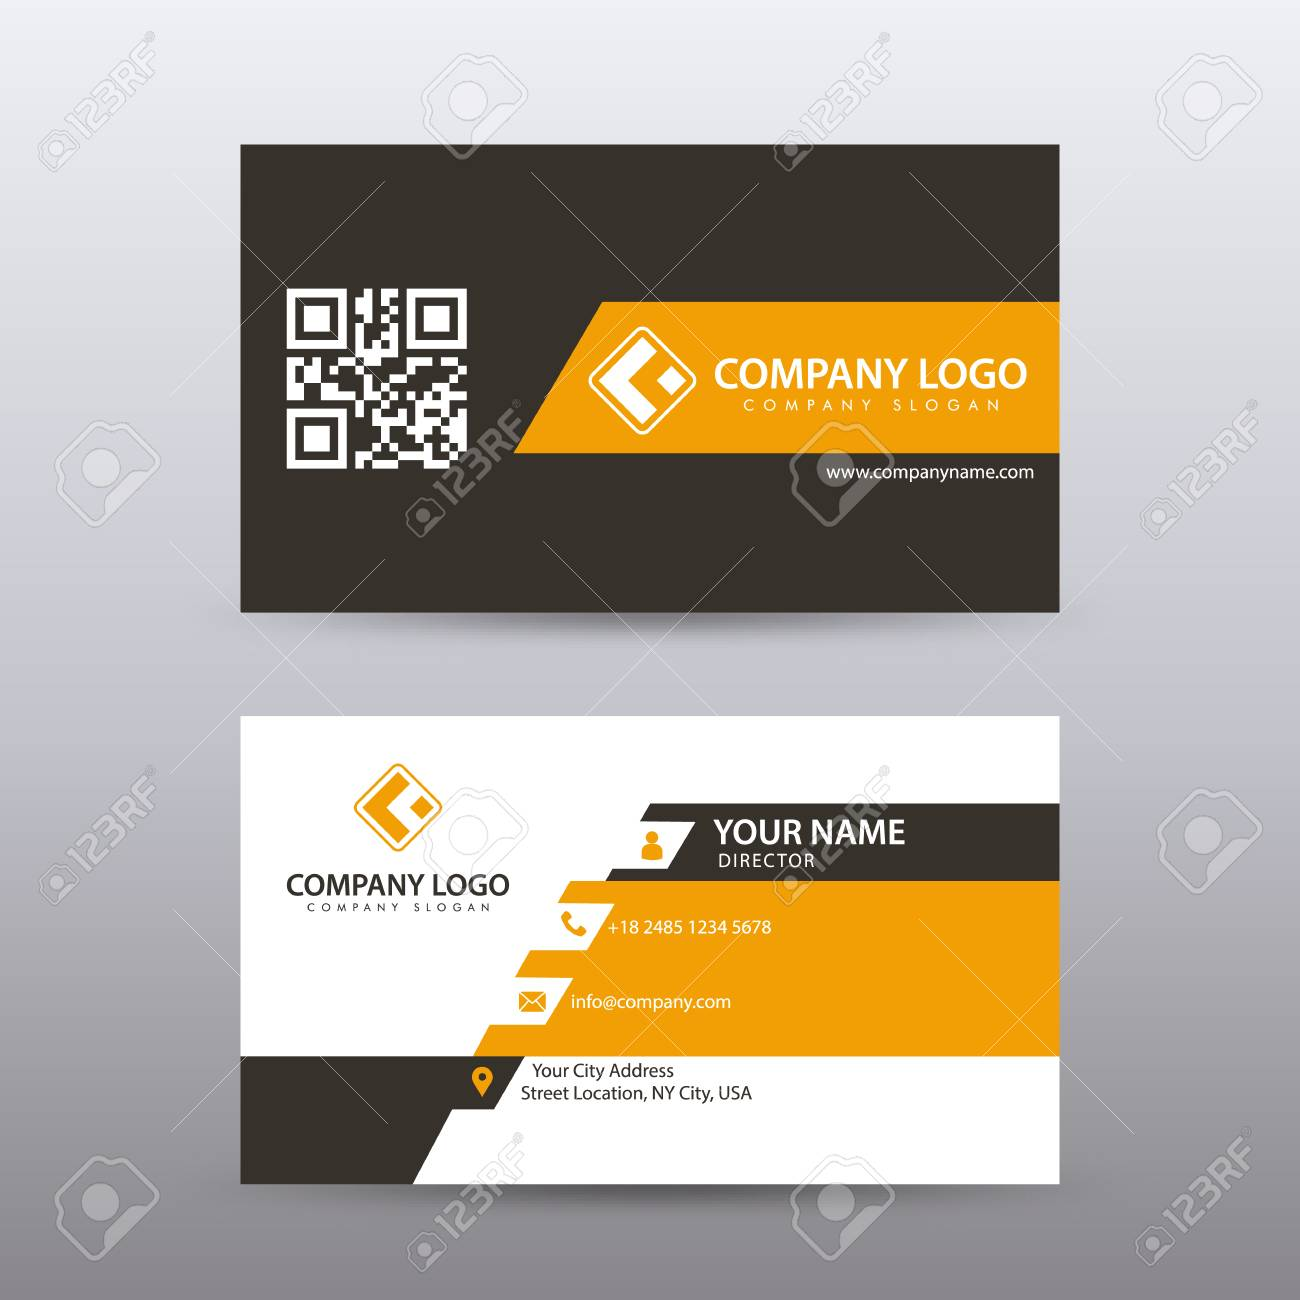 Modern Creative and Clean Business Card Template with orange Black color . Fully editable vector. - 94504020